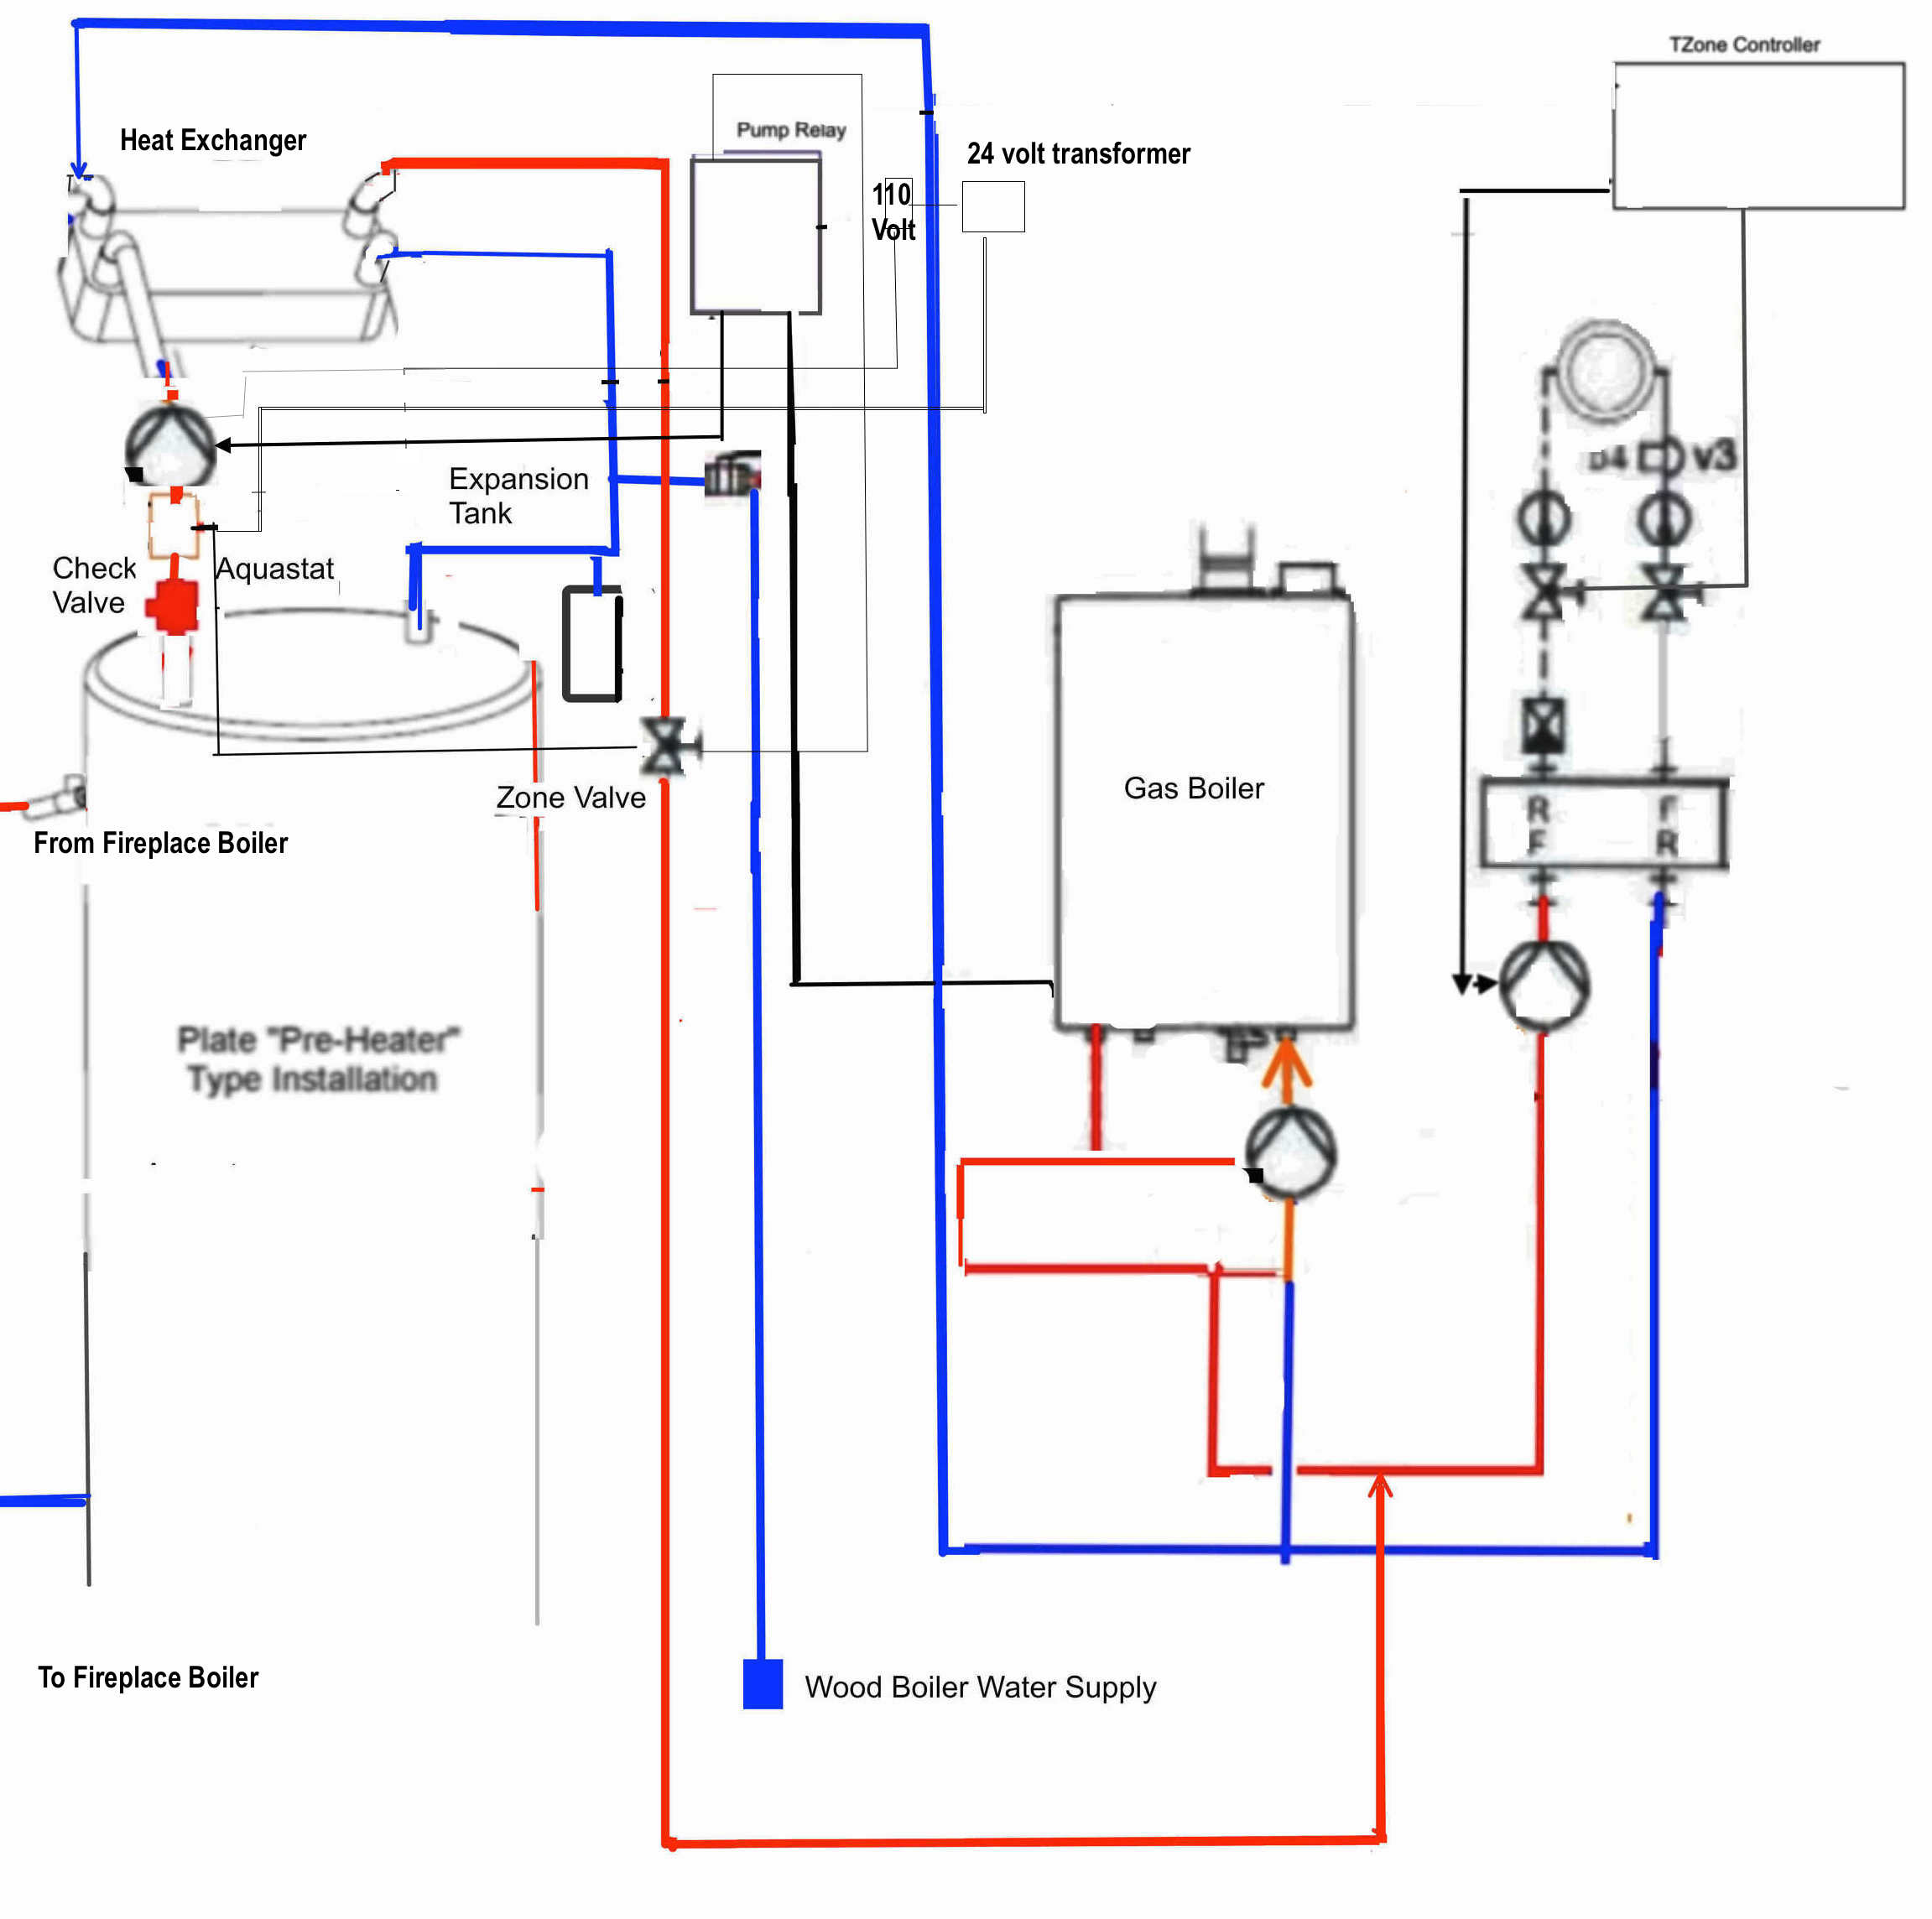 fireplace water heat exchanger. FP Boiler Storage Wiring Plan for Fireplace  Twinsprings Research Institute